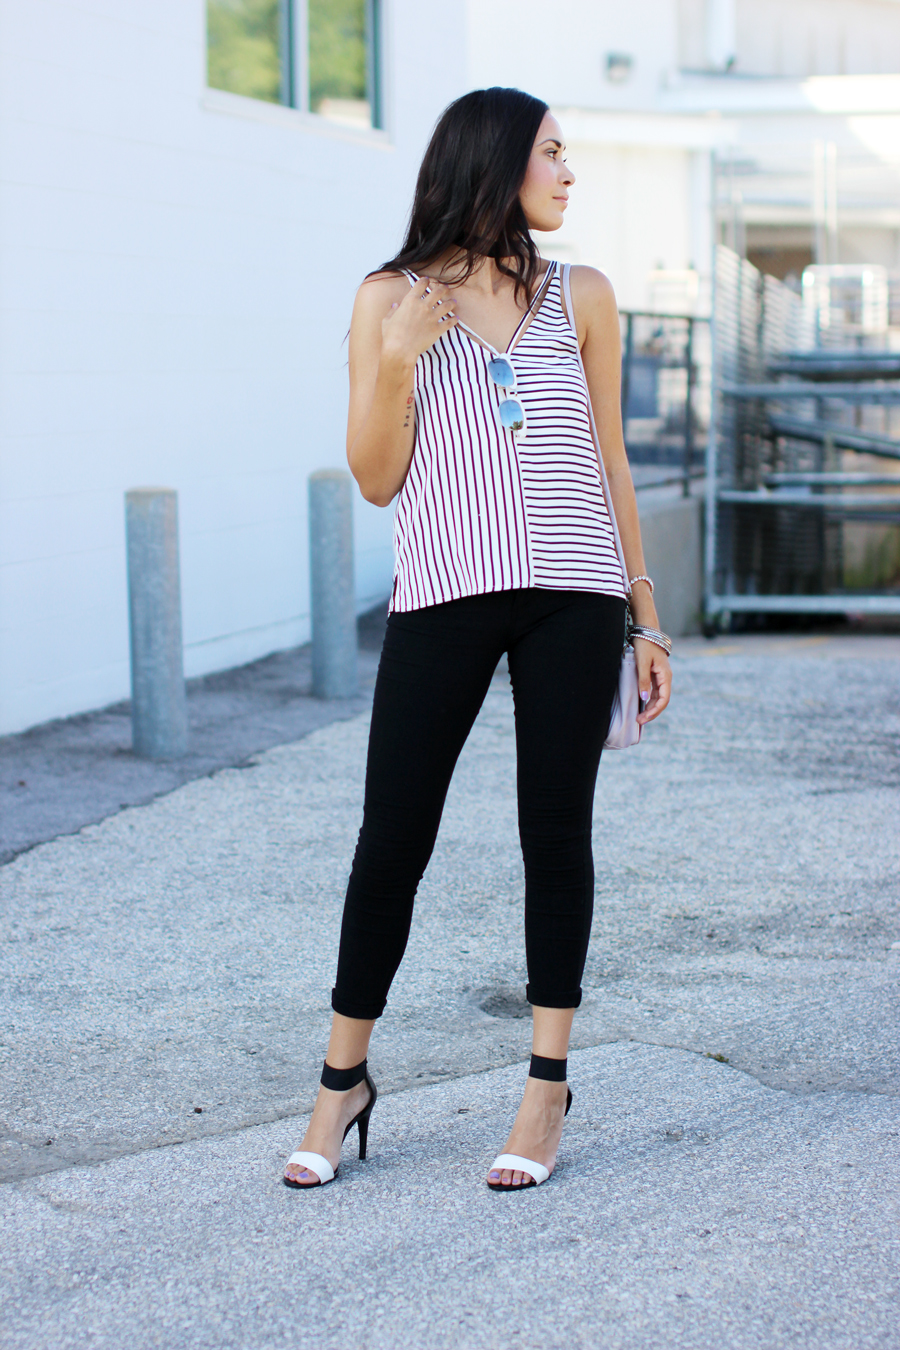 FTT-SHEIN-BLACK-WHITE-STRIPES-SUMMER-CHIC-3